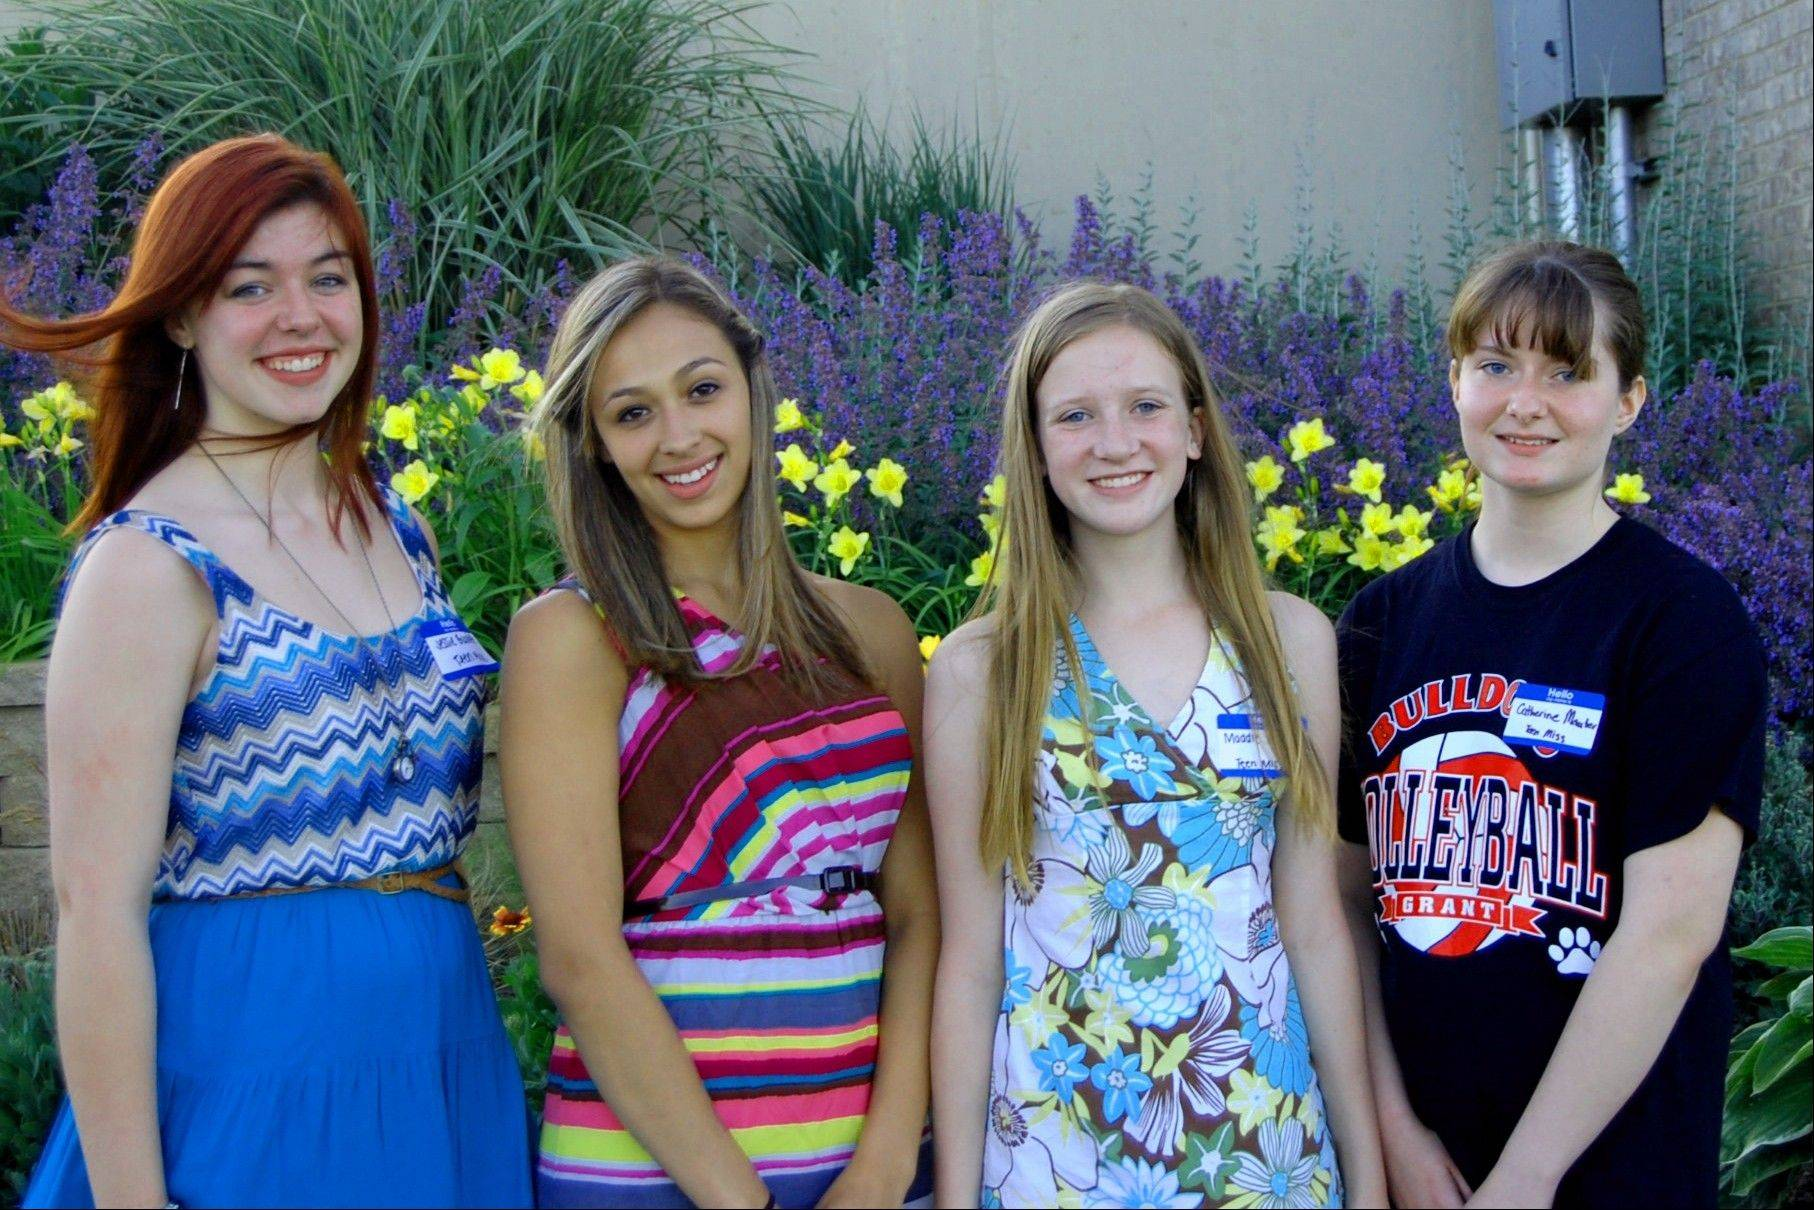 The contestants in the Teen Miss Grant Township 2012 Pageant: Jessie Burdette, Maryah Dominguez, Maddie Hendrickson and Catherine Mauter.